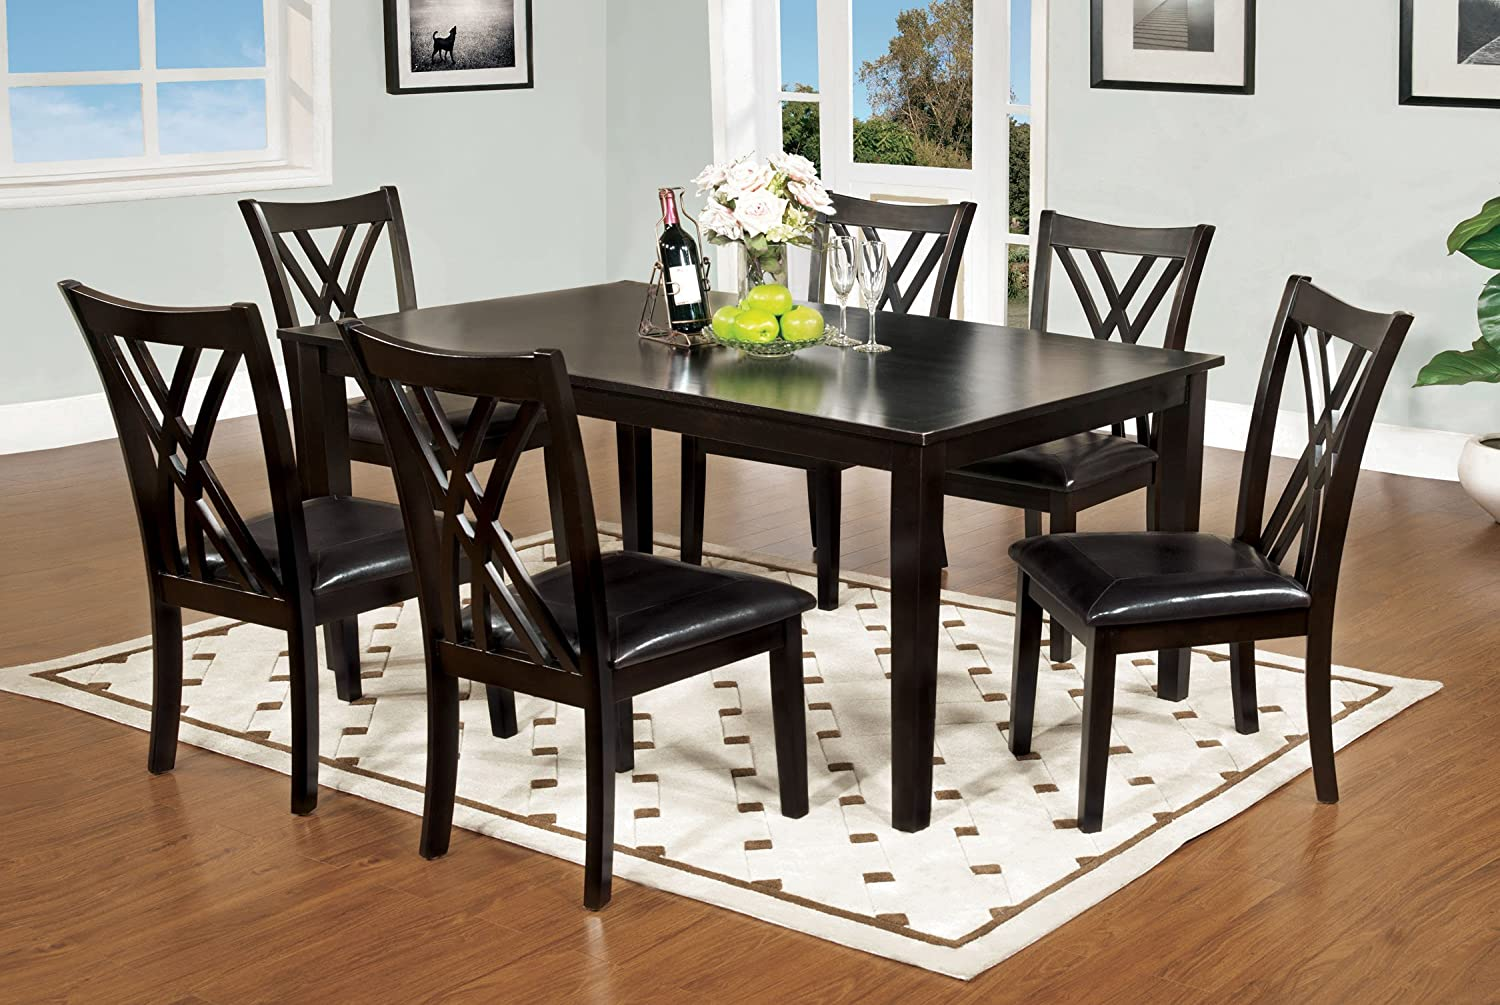 Amazon.com - Furniture of America 7-Piece Hearst Rectangular Dining Table and Chair Set Espresso Finish - Table \u0026 Chair Sets : espresso dining table set - pezcame.com